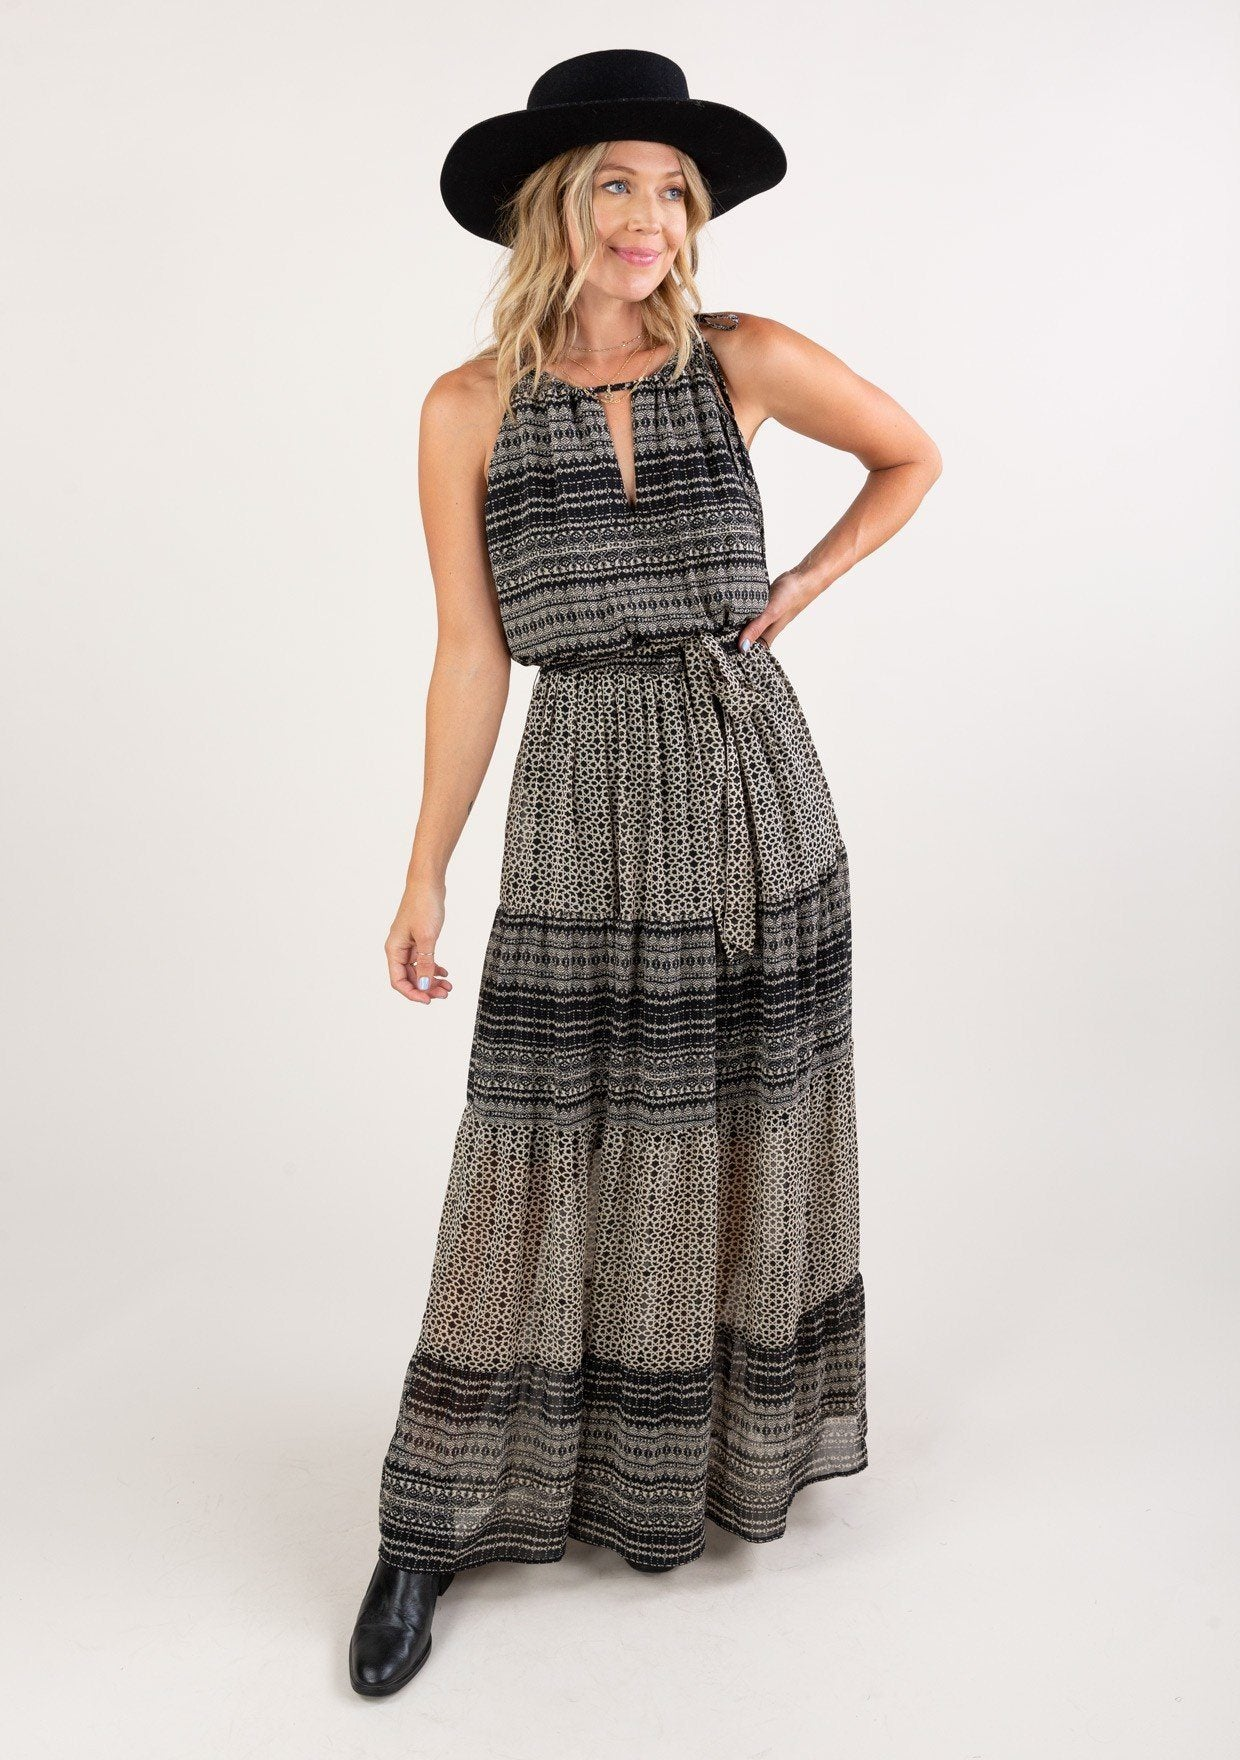 [Color: Black Cream] Embrace the romance of Fall in our bohemian sleeveless maxi dress in a mixed geometric print. Featuring a trending drawstring neckline, an elastic waist with a self tie belt for definition, and a flirty tiered skirt. An essential maxi style for all your Autumn escapades.